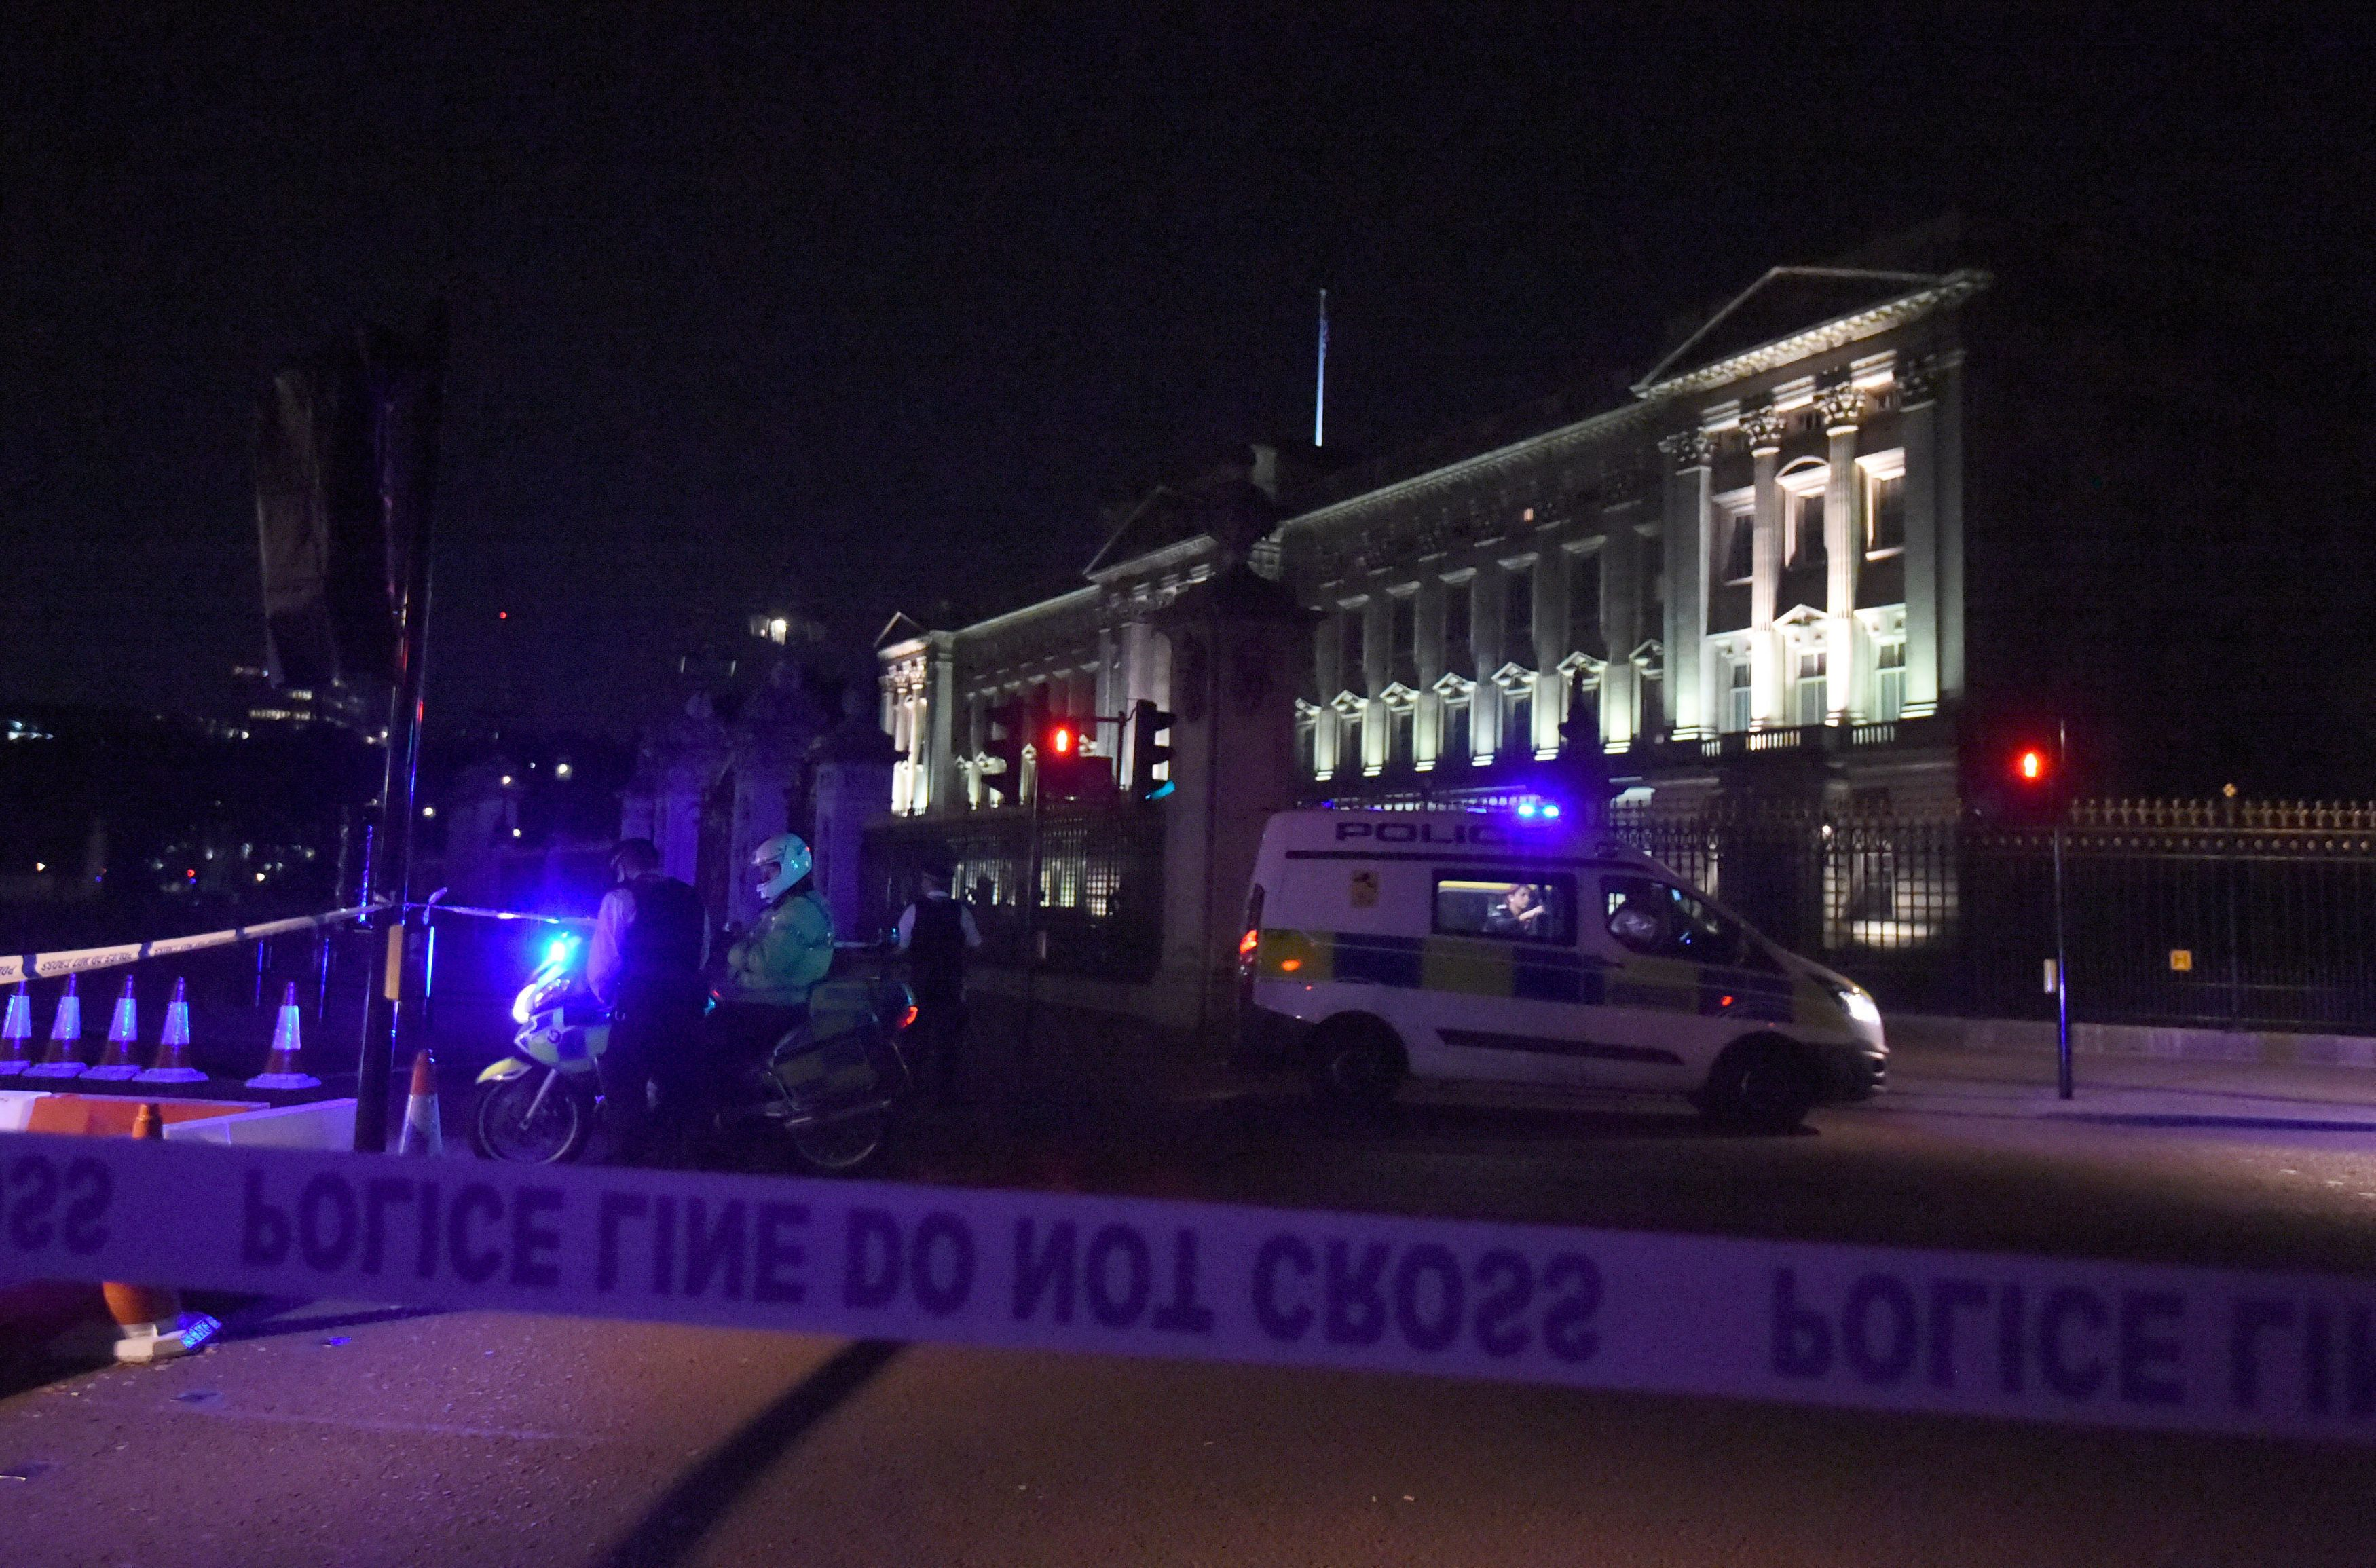 Buckingham Palace terror suspect to appear in court over sword incident